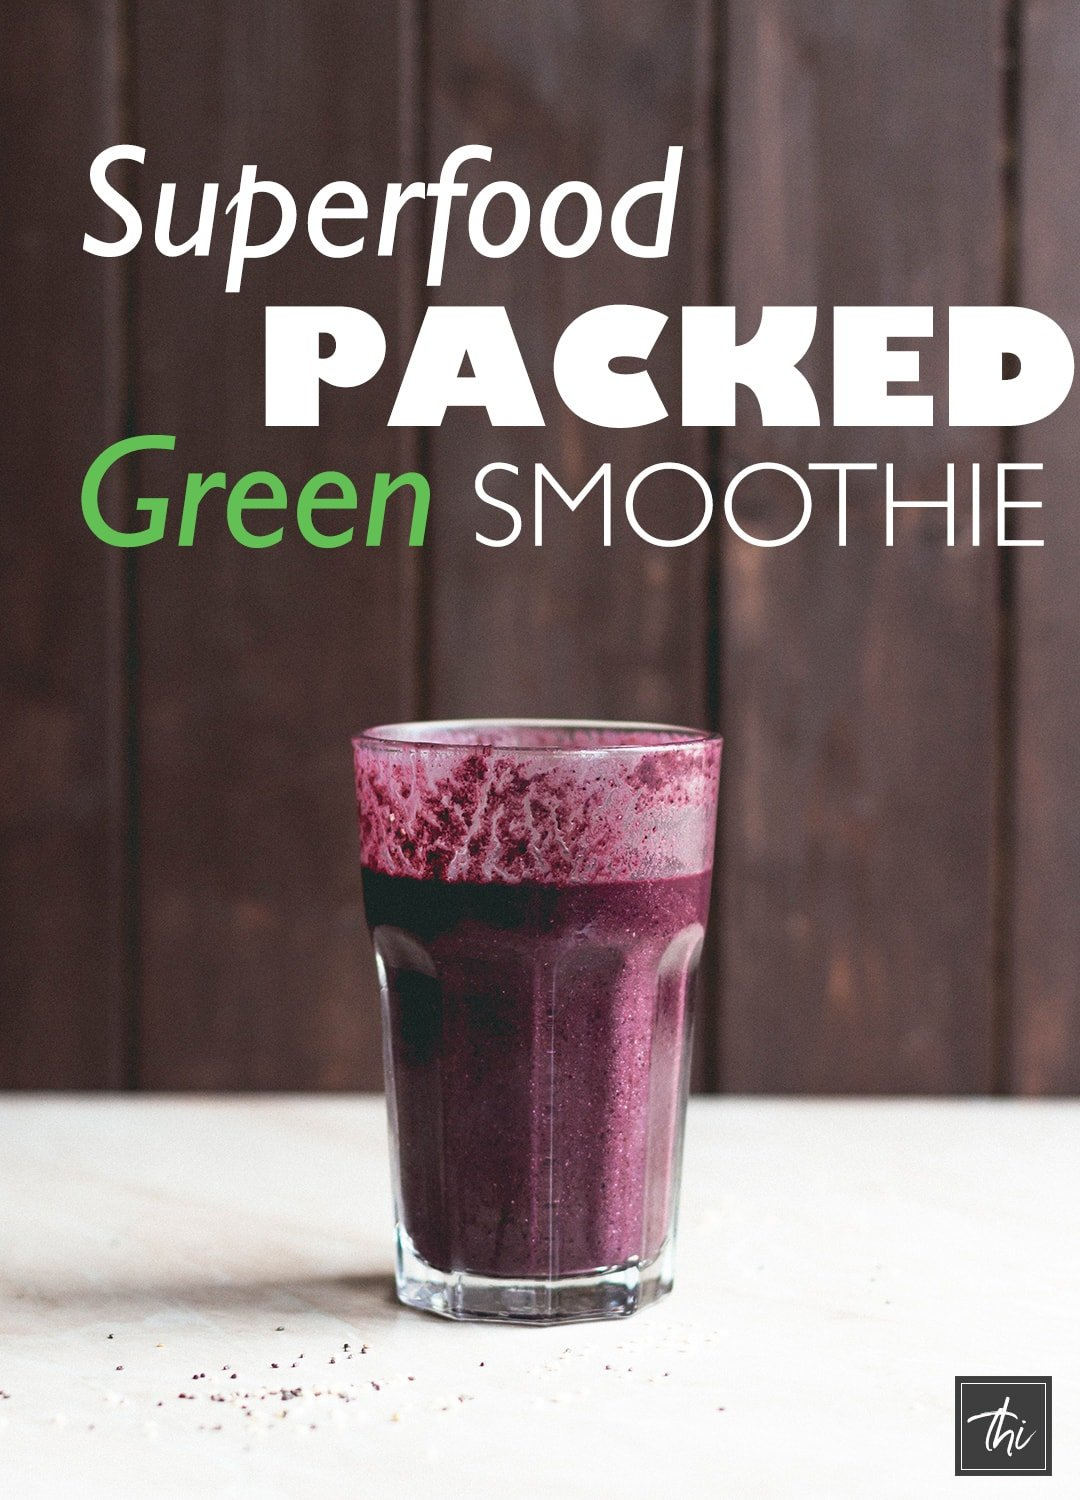 Superfood Packed Green Smoothie - the best green smoothie recipe! Ready in minutes and really nutritious! | thehealthfulideas.com